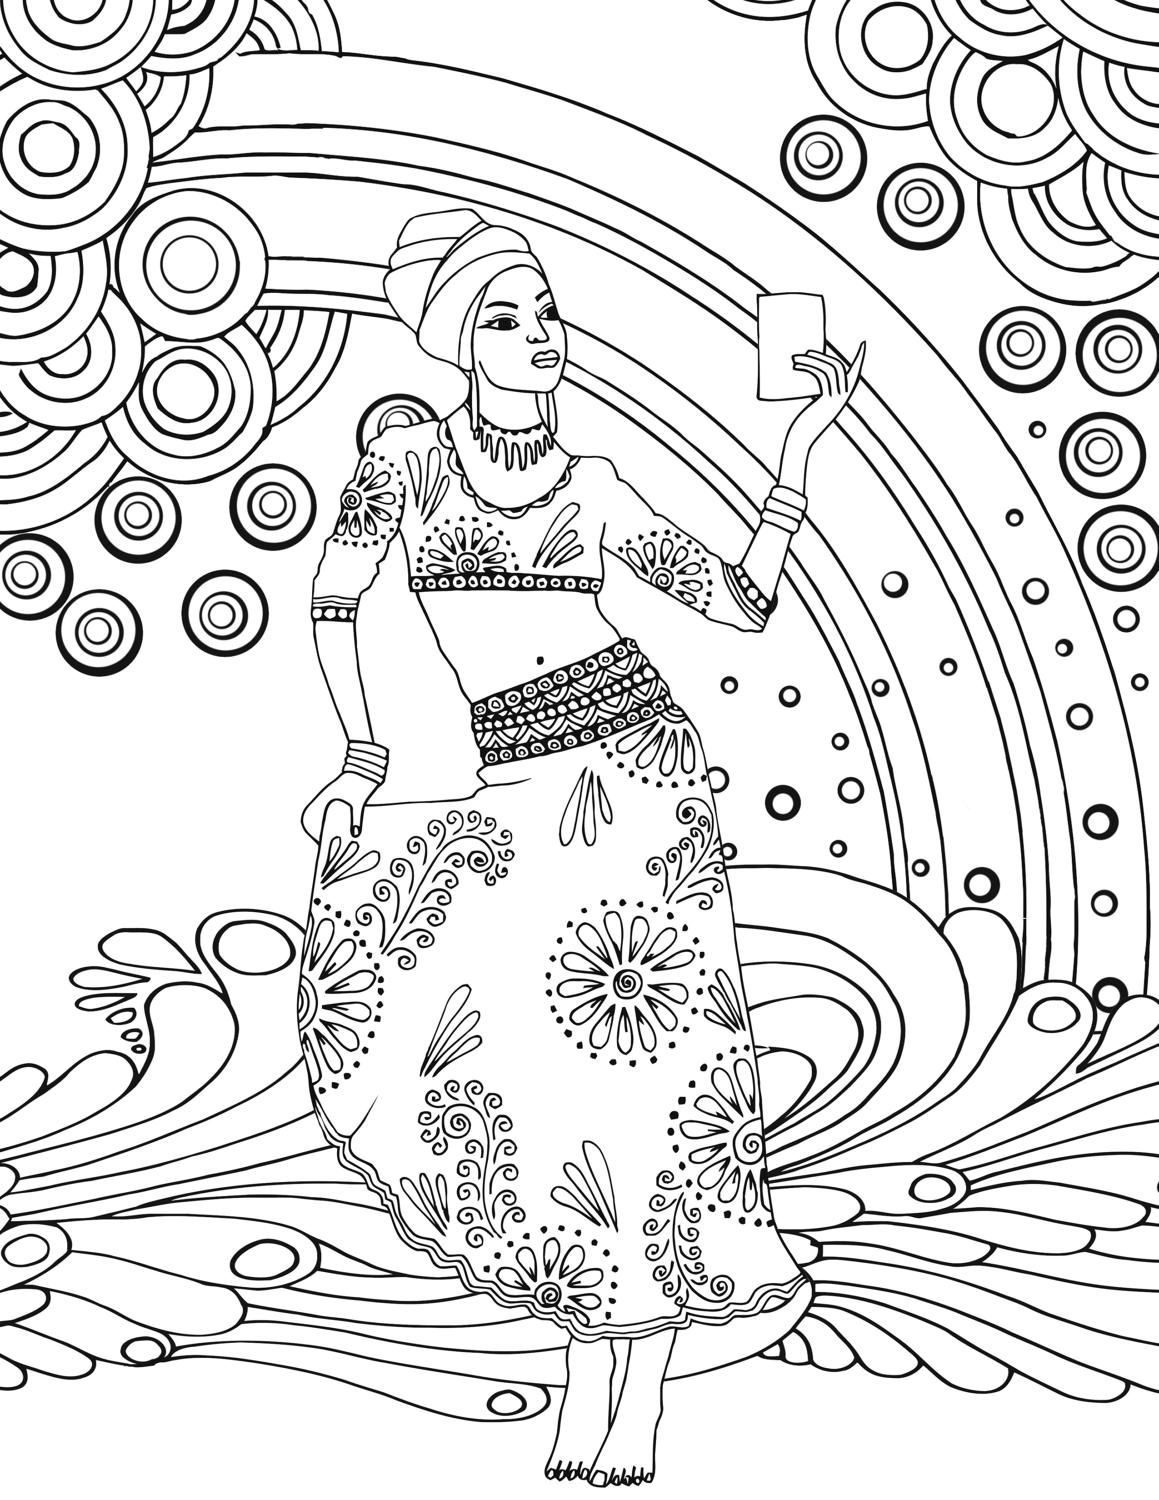 African Goddess Adult Colouring Page Printable Coloring